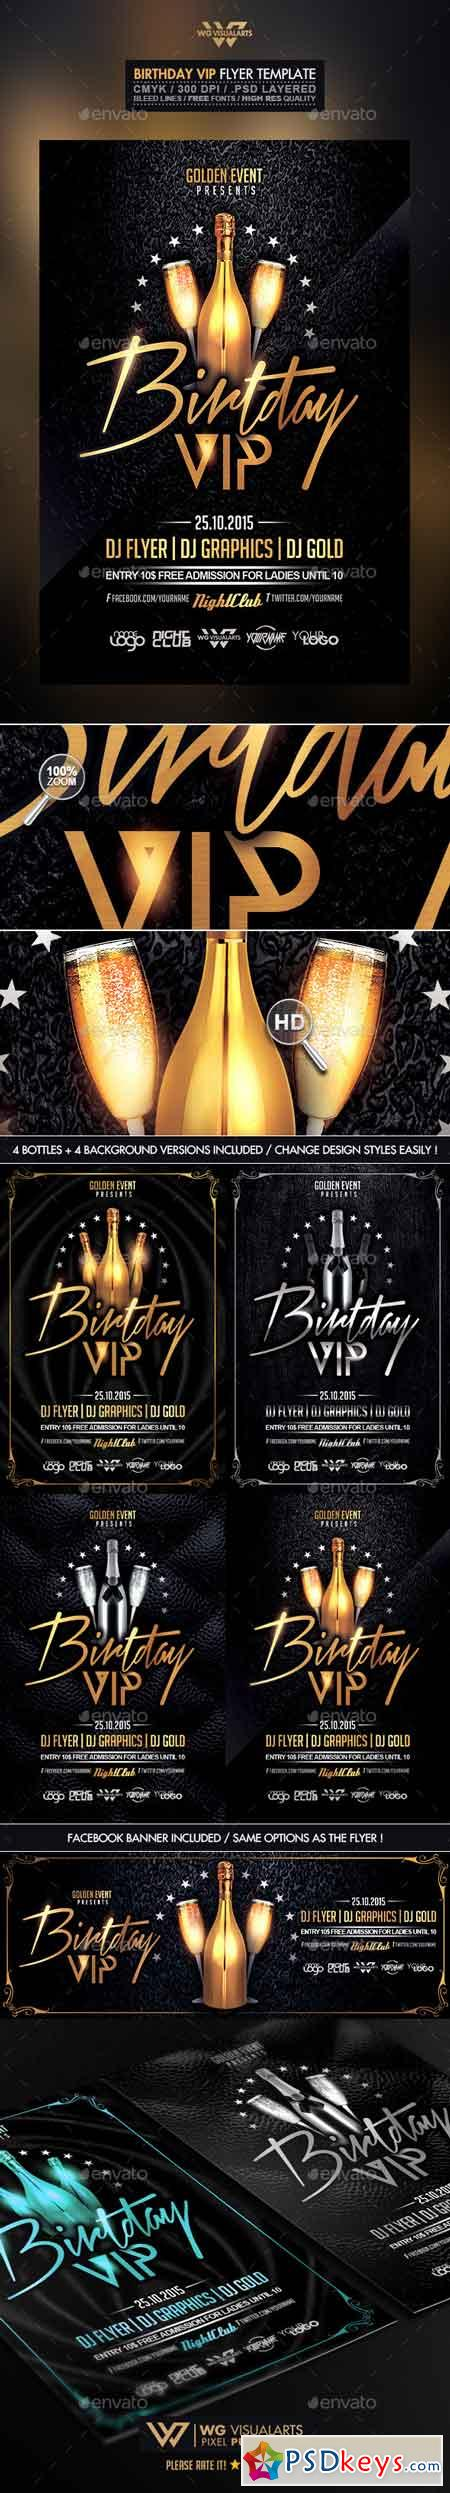 Birthday VIP Flyer Template 10480842